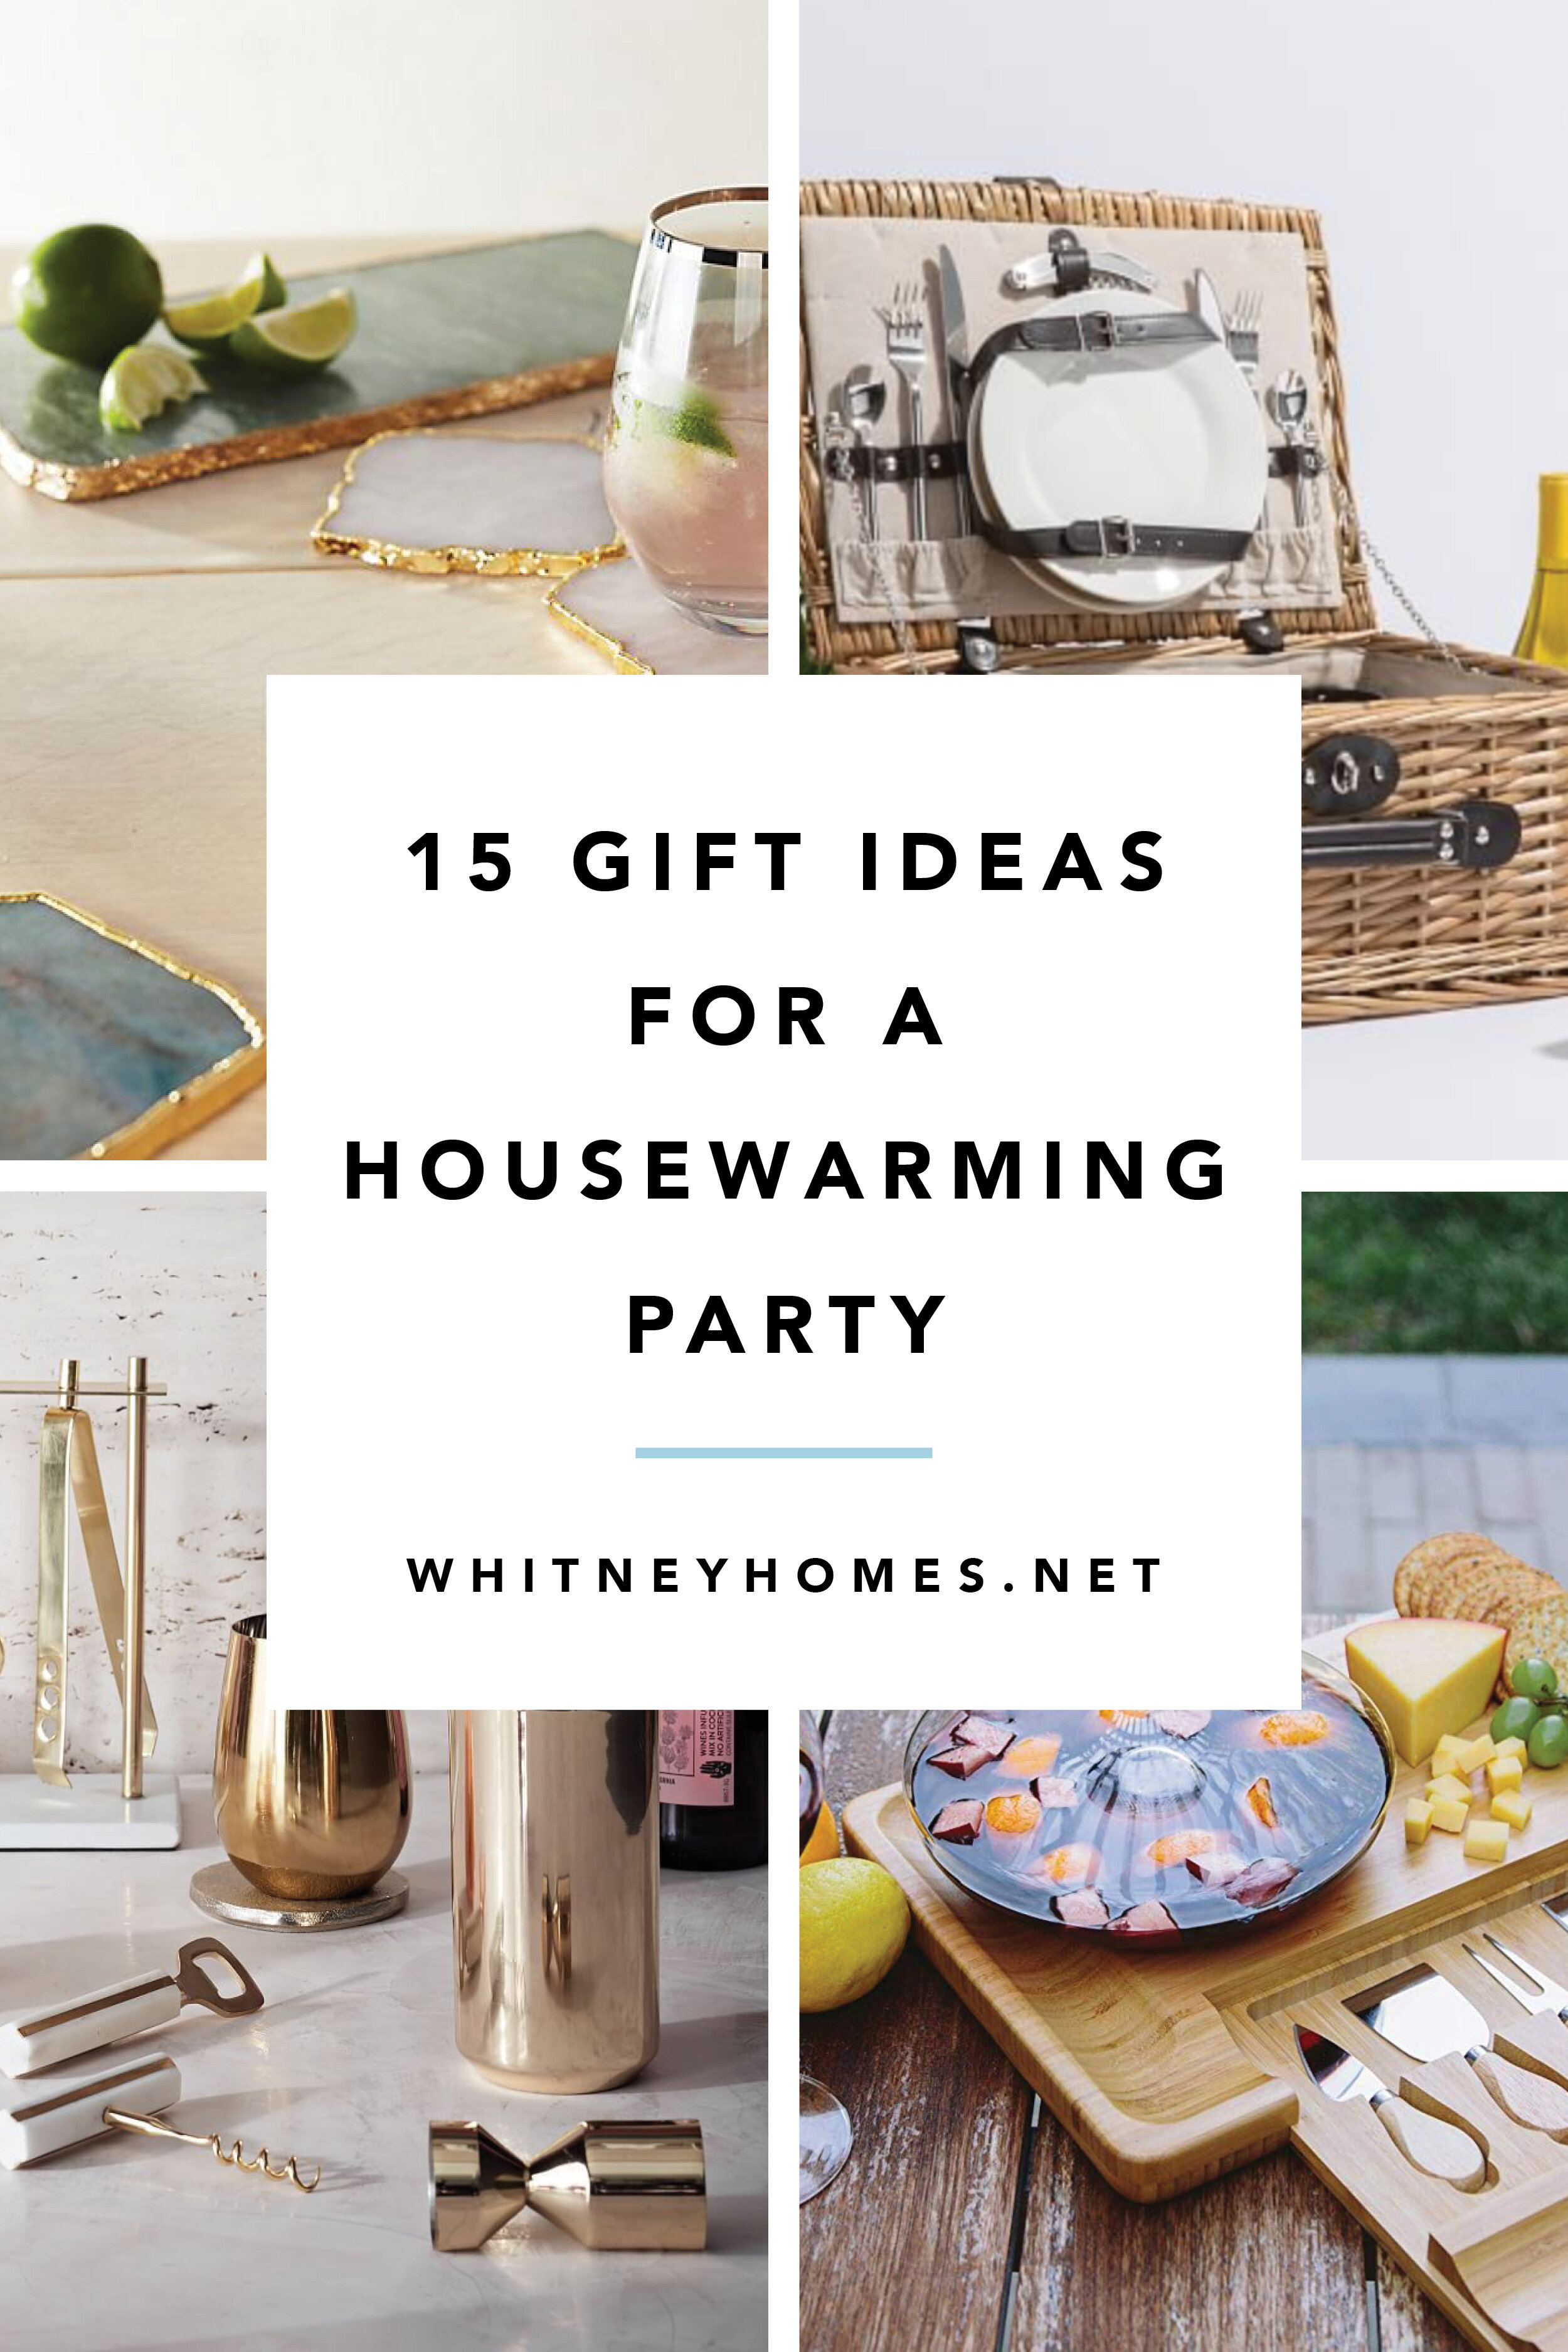 15 Housewarming Gifts For The Hostess With The Mostest Whitney Homes